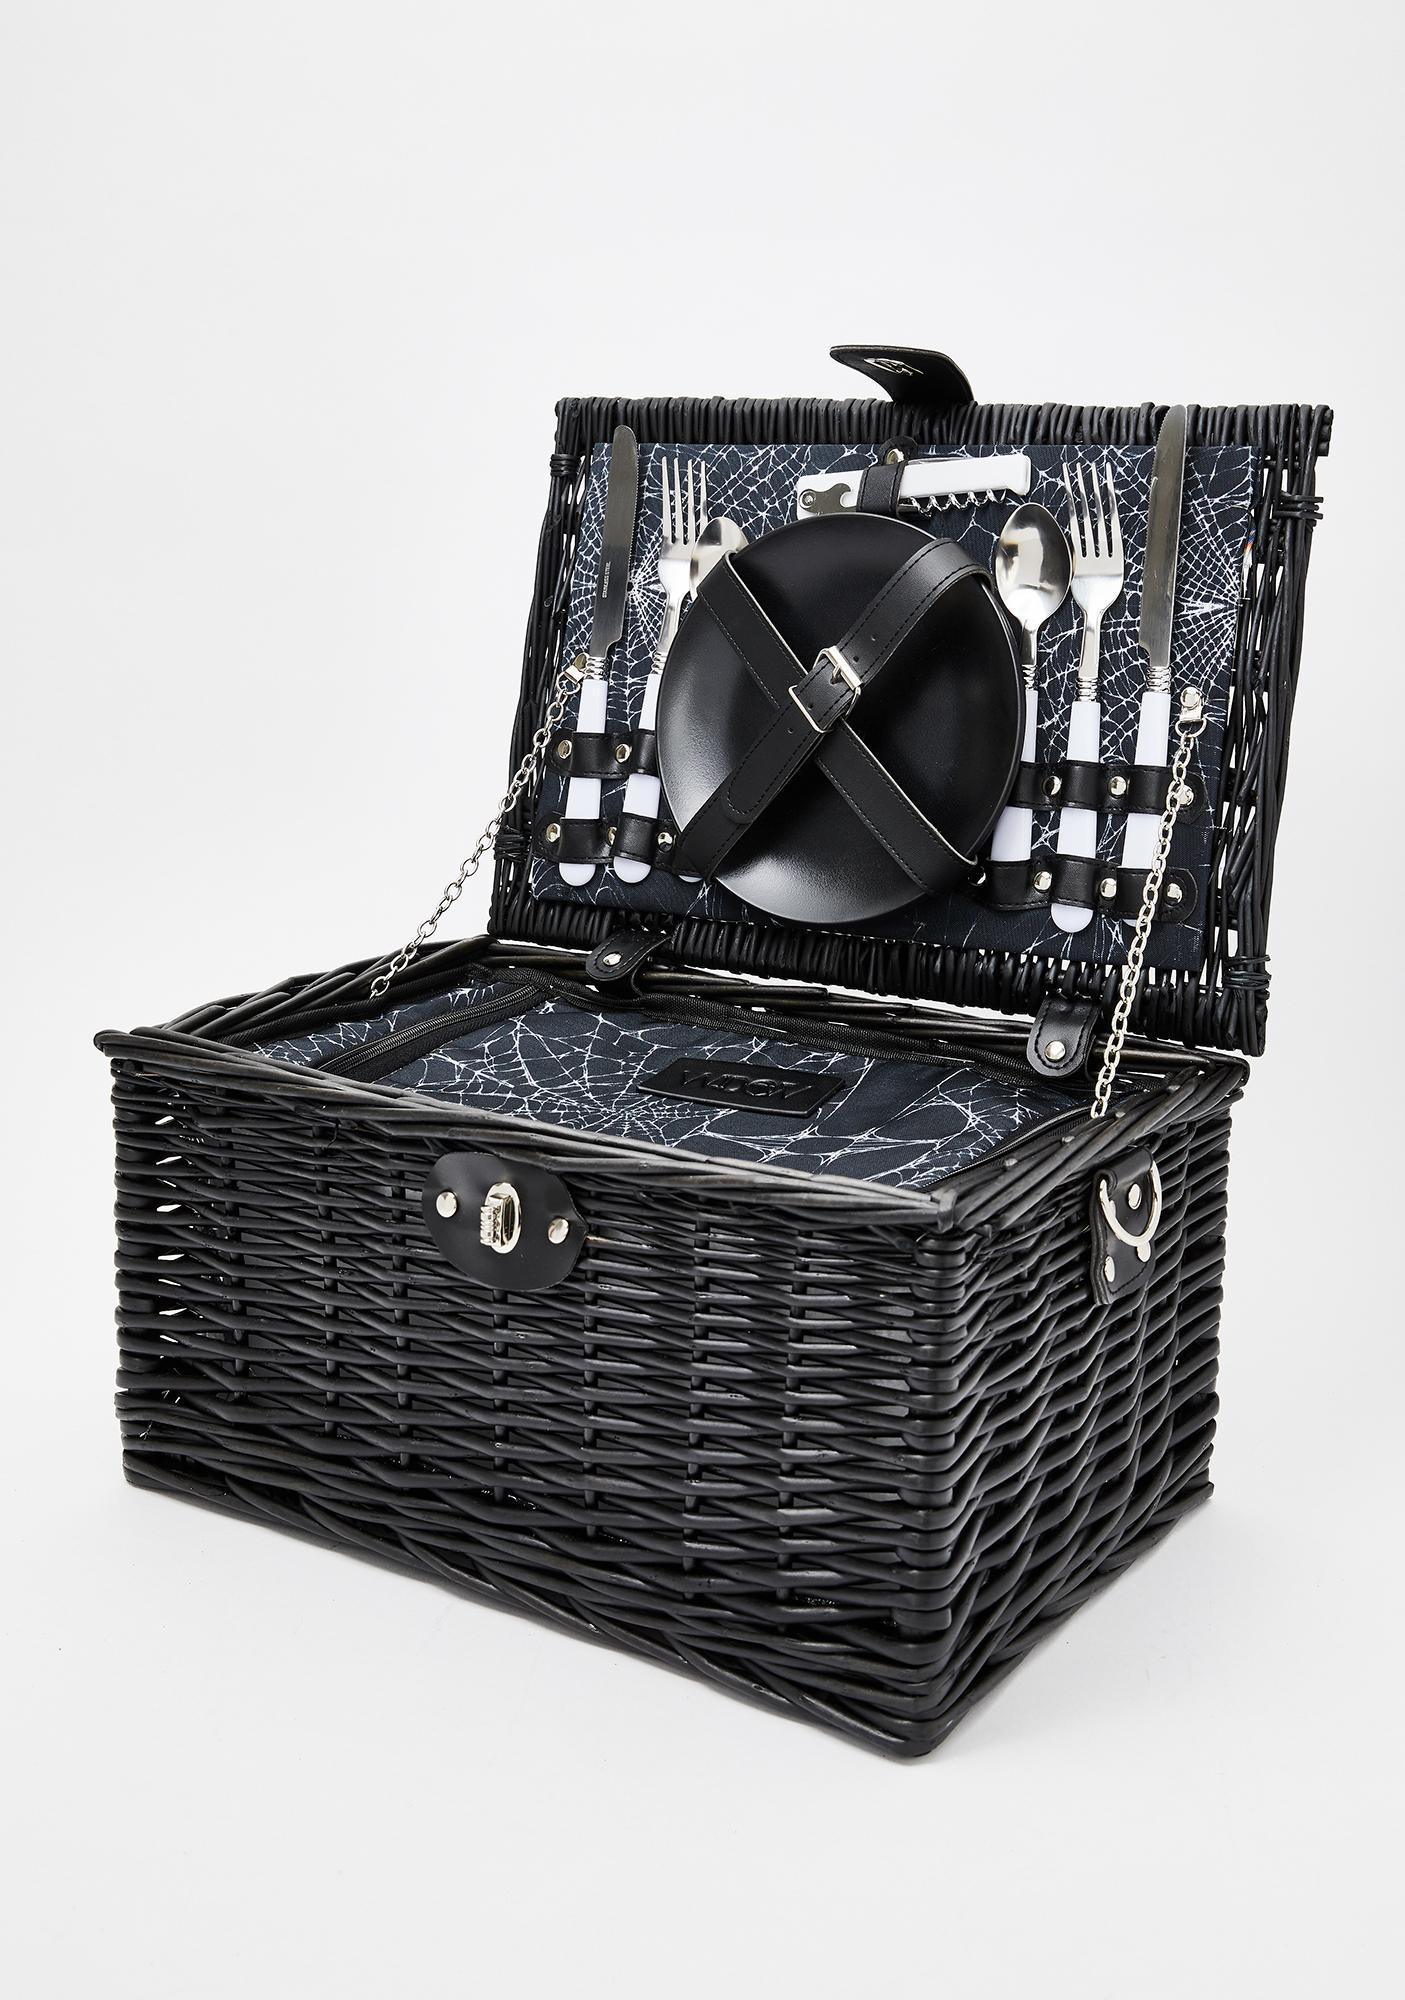 Widow Wine N' Die'n Picnic Basket